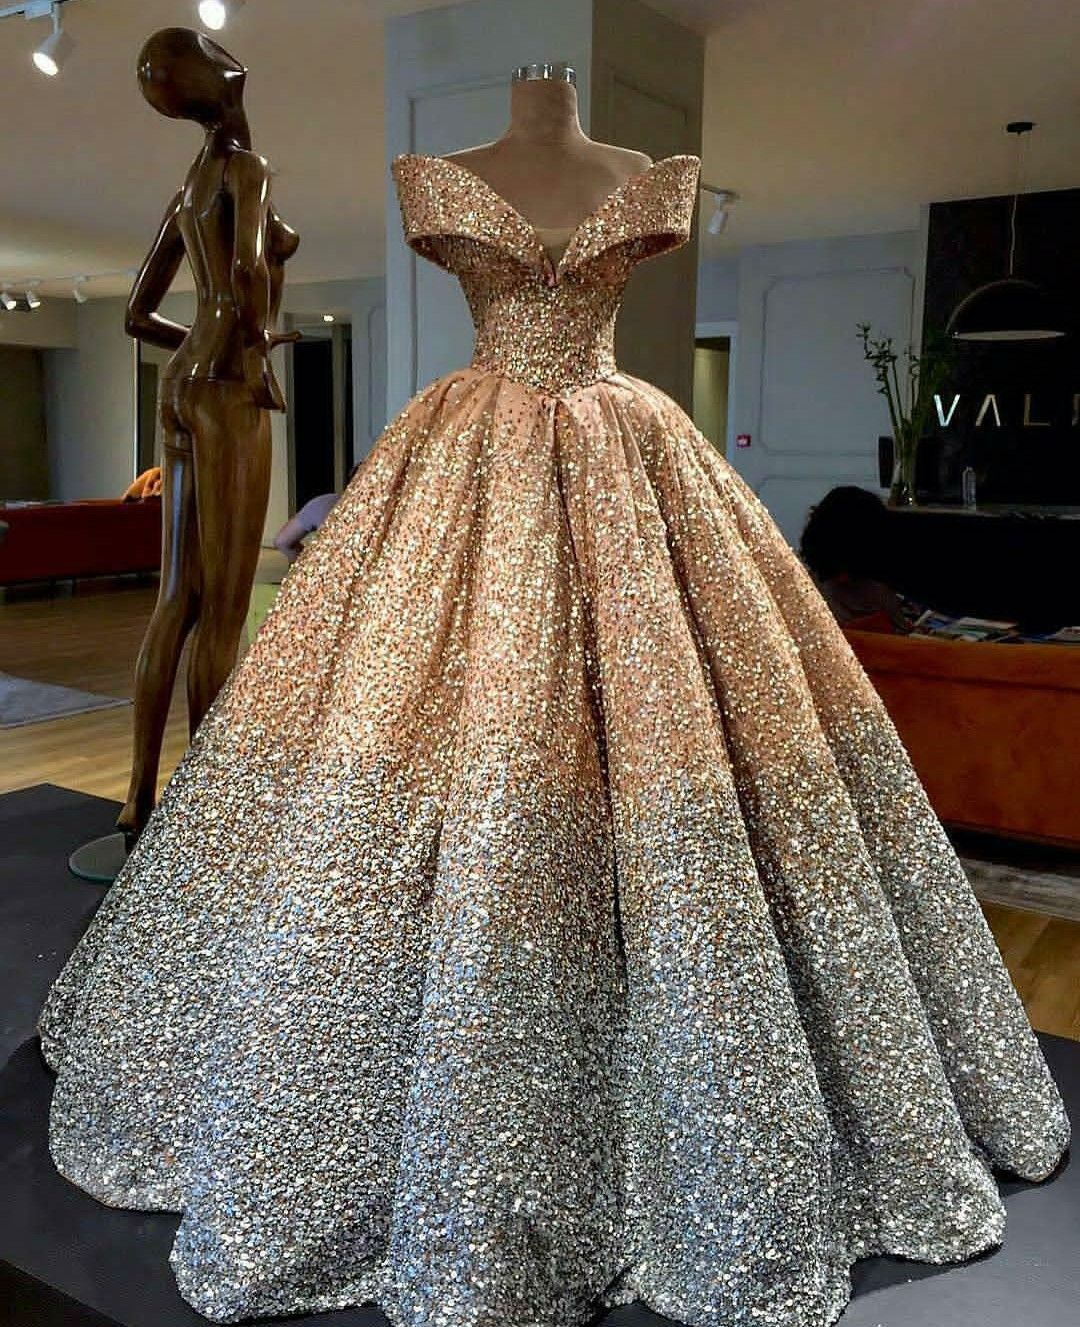 Pin by Mary K on Gowns | Pinterest | Gowns, Prom and Wedding dress